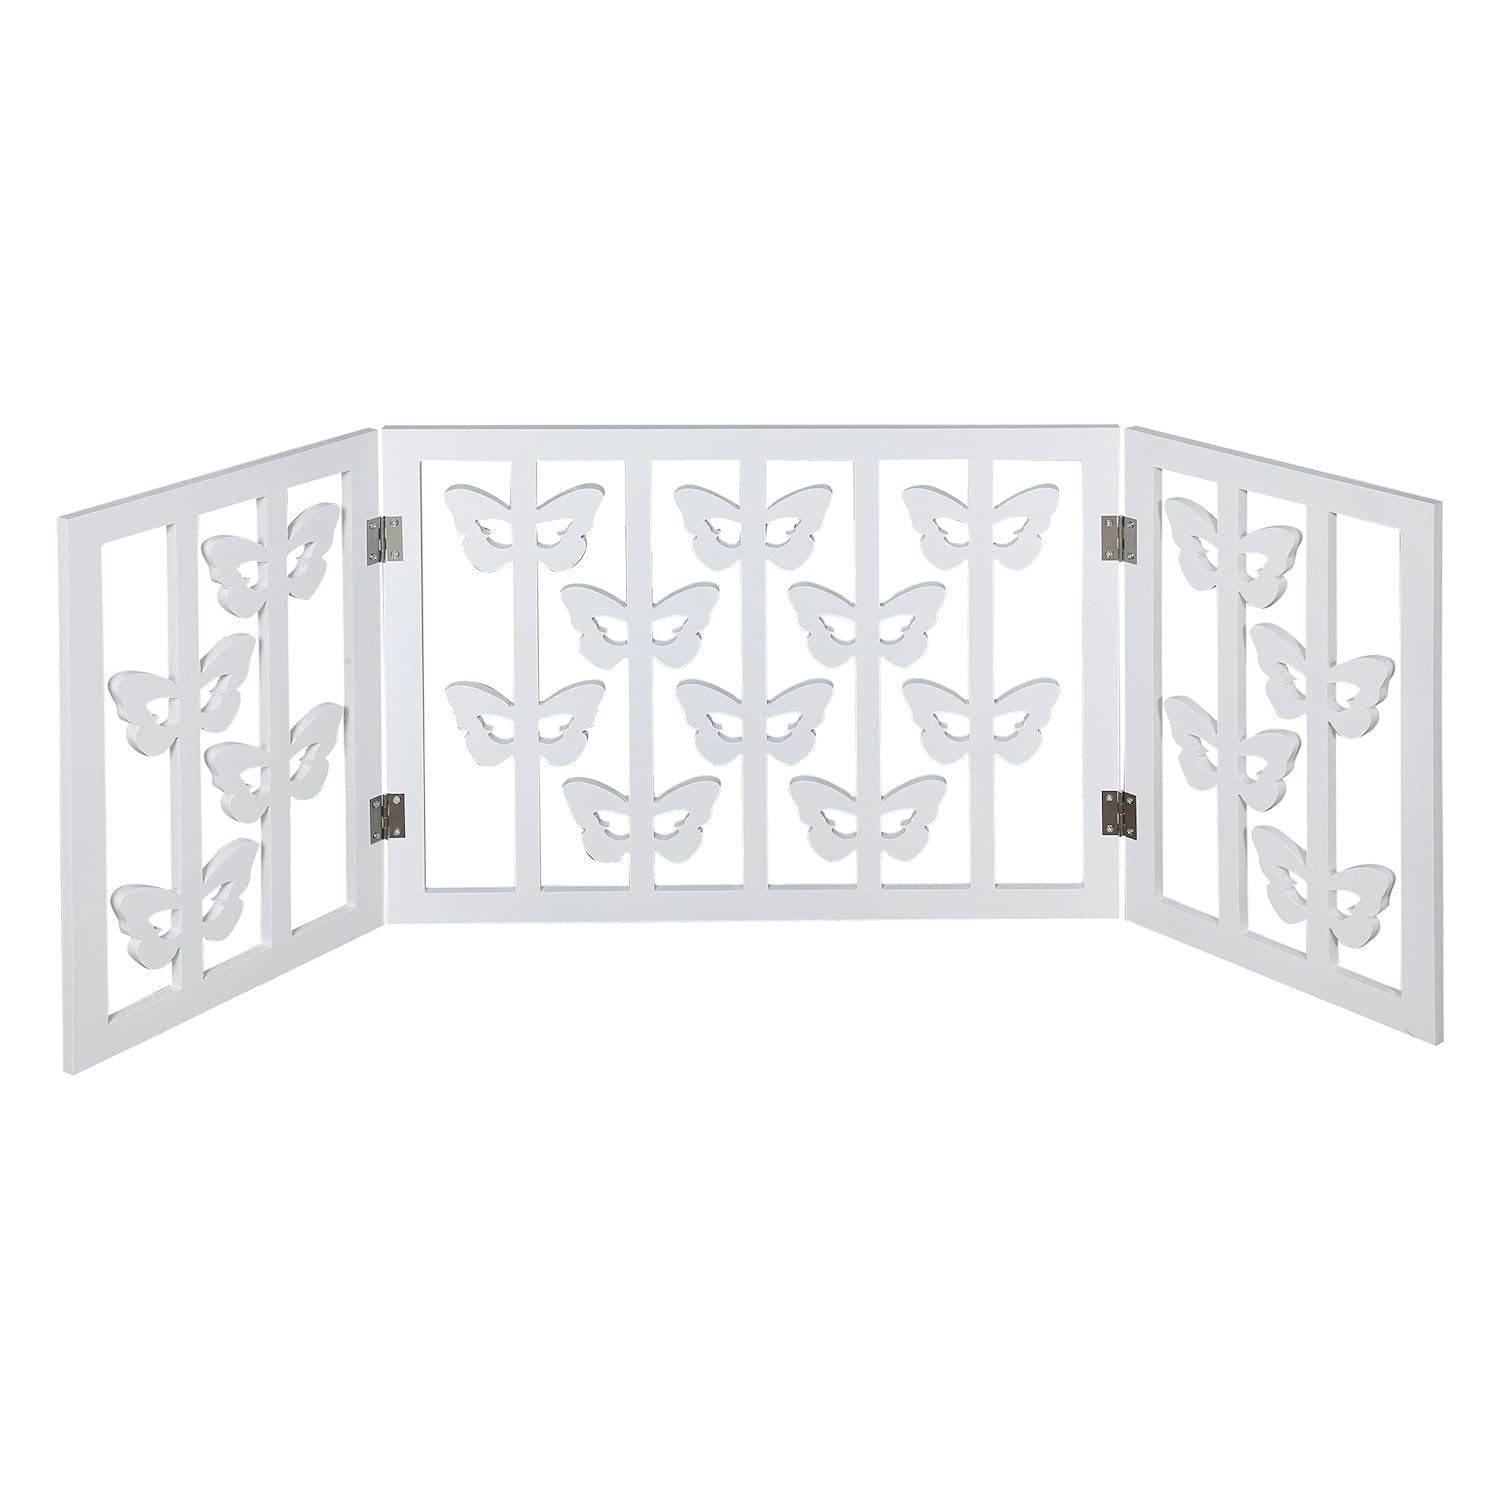 Indoor/Outdoor Solid Wood Butterfly Design Freestanding Foldable Adjustable 3-Section Pet Gate